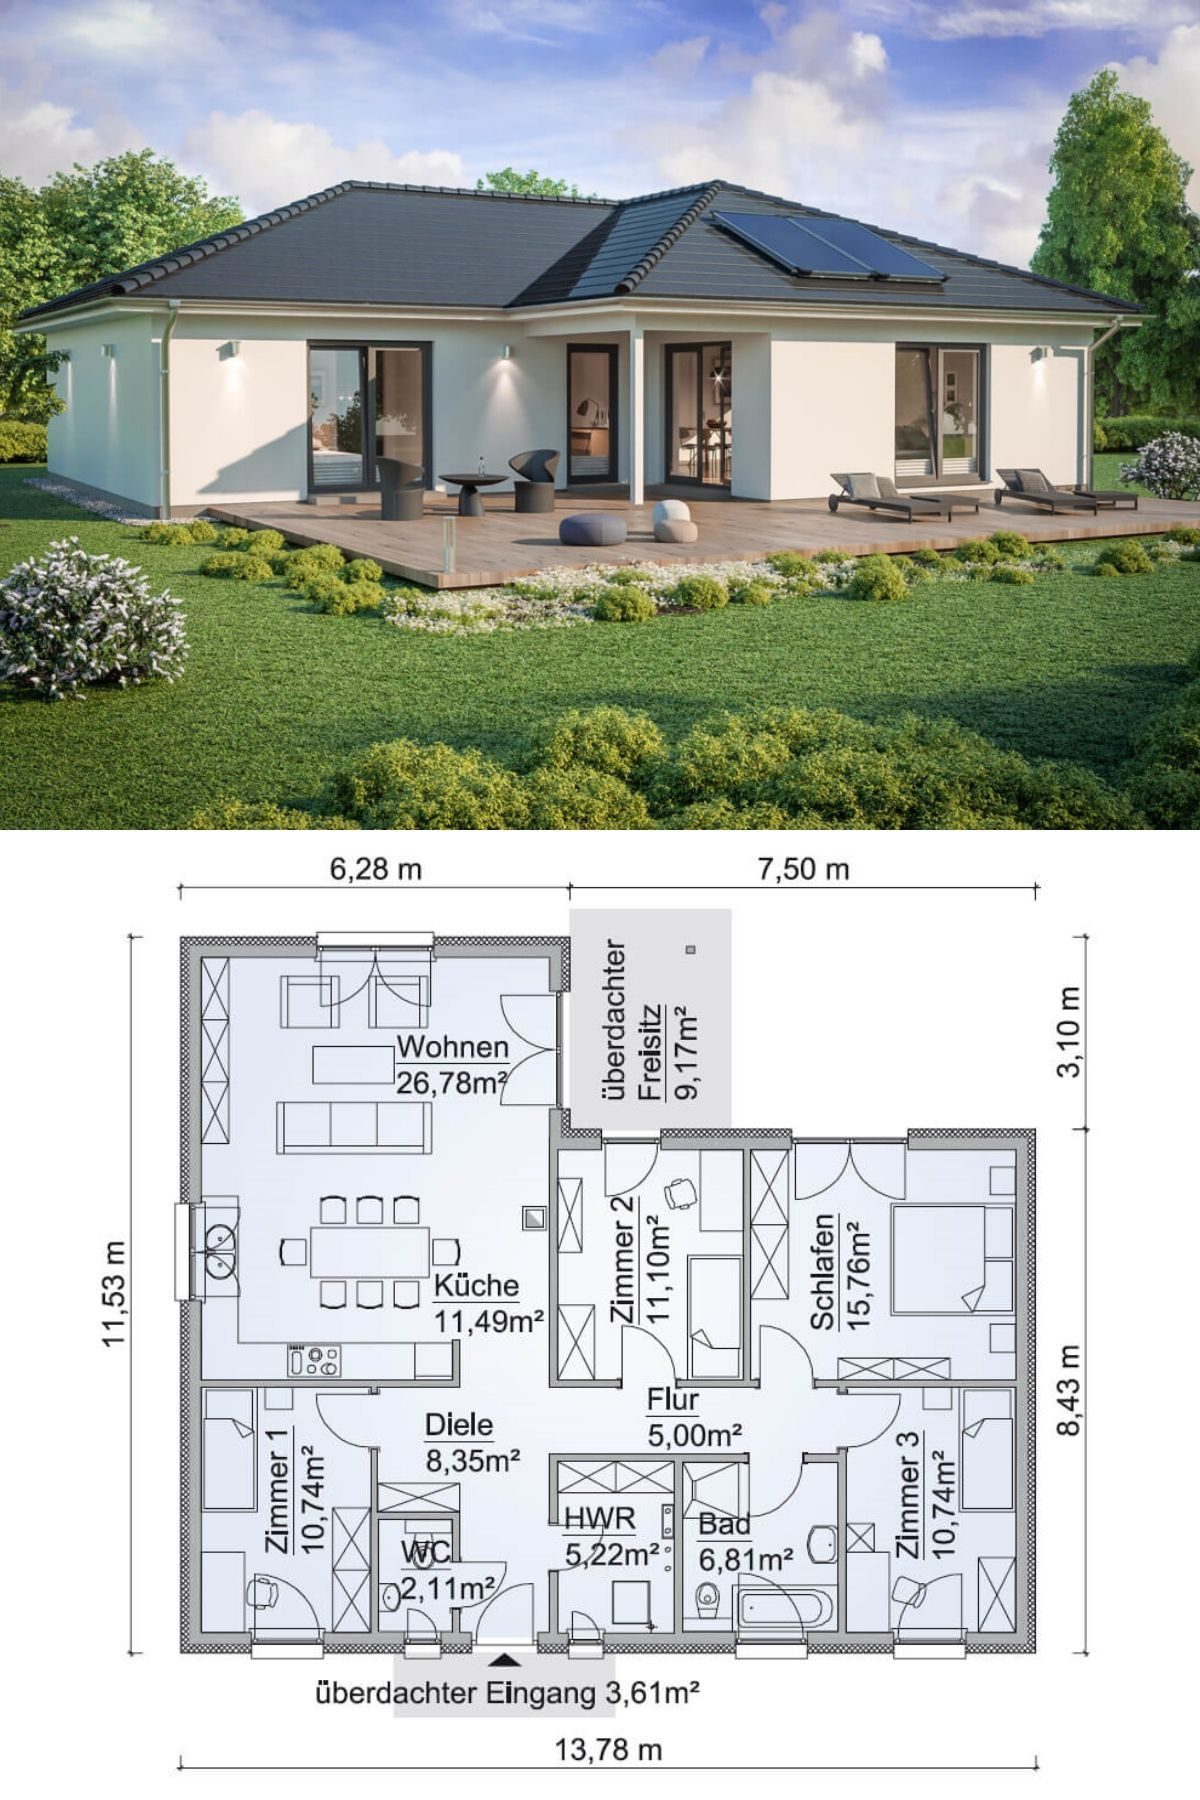 Bungalow SH 115 WB XXL variant B  ScanHaus Marlow  direct construction  Bungalow house modern floor plan with hipped roof architecture  5 rooms  corner bungalow build